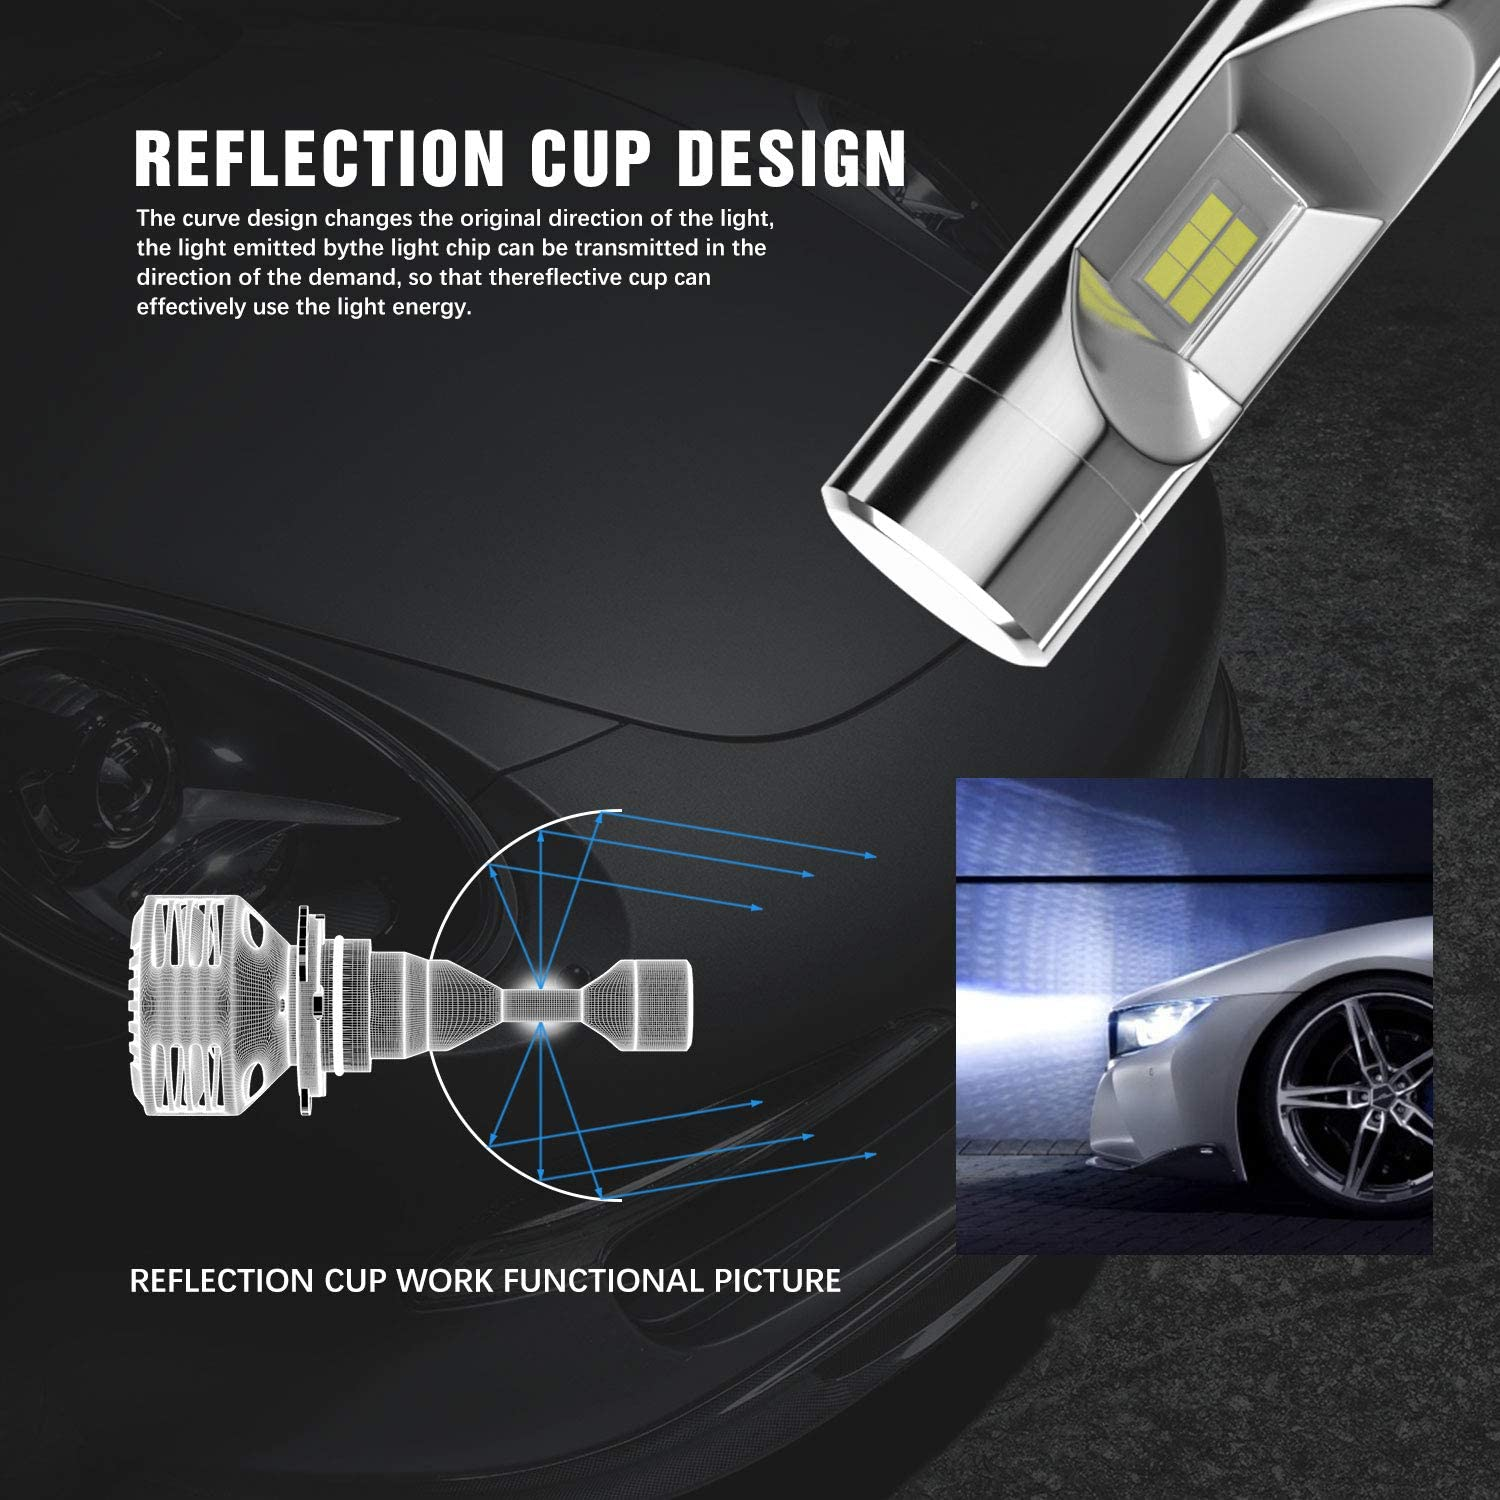 Pack of 2 GPNE H11//H8//H9 LED Headlight Bulbs 56W 10000 Lumens Super Bright High Low Beam LED Fog Light with Superior CSP Chips 6000K Cool White IP68